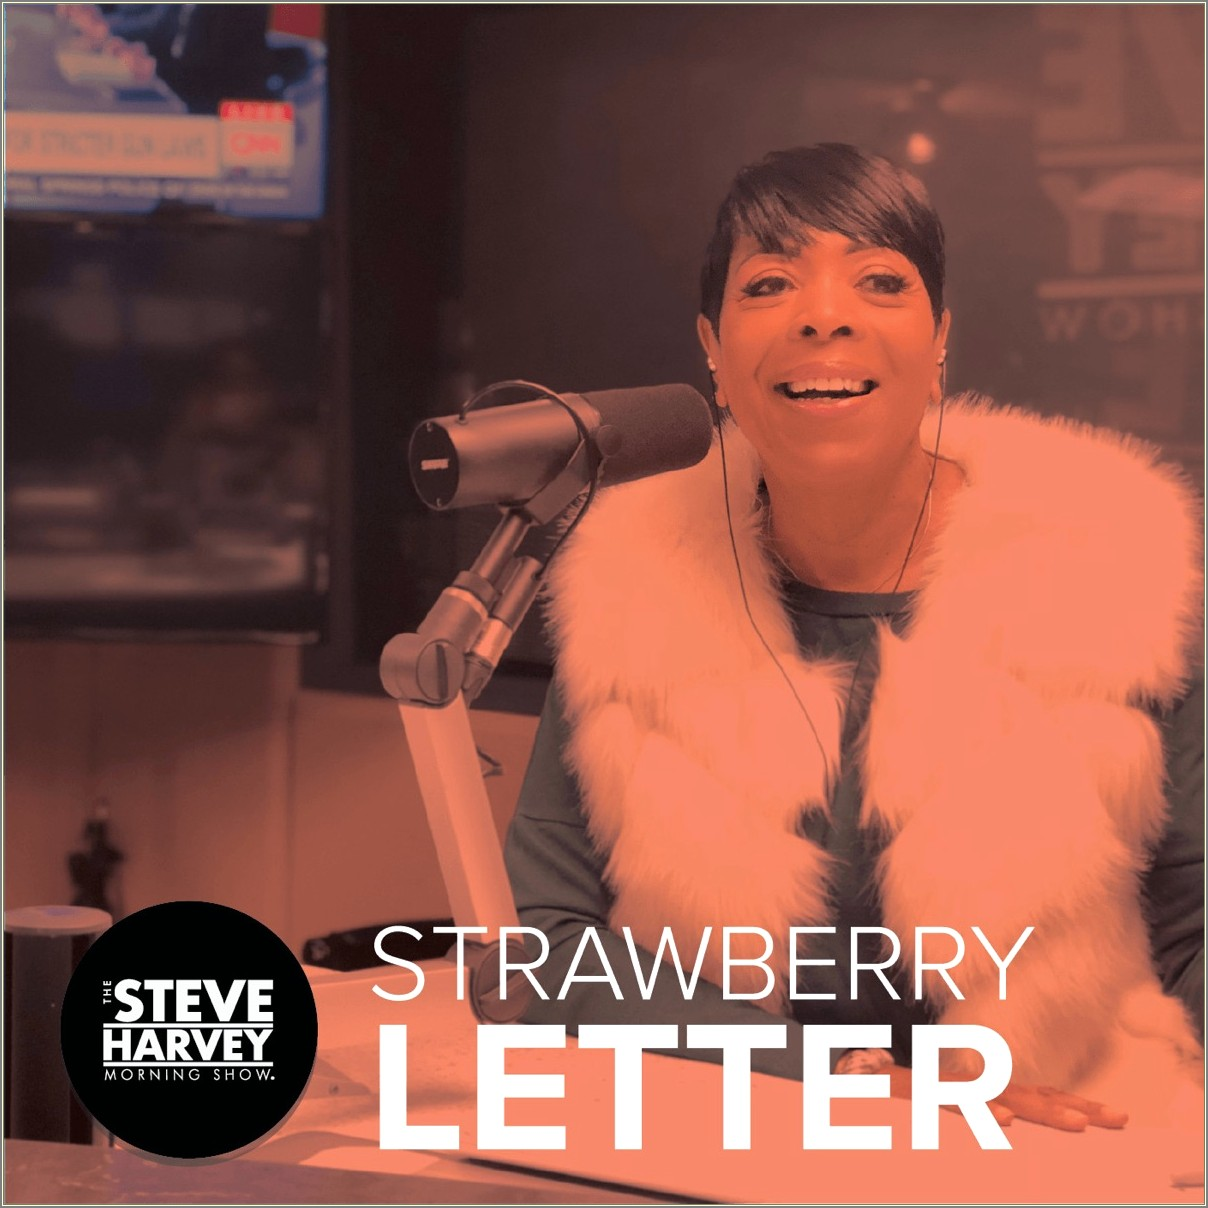 Steve Harvey Strawberry Letter